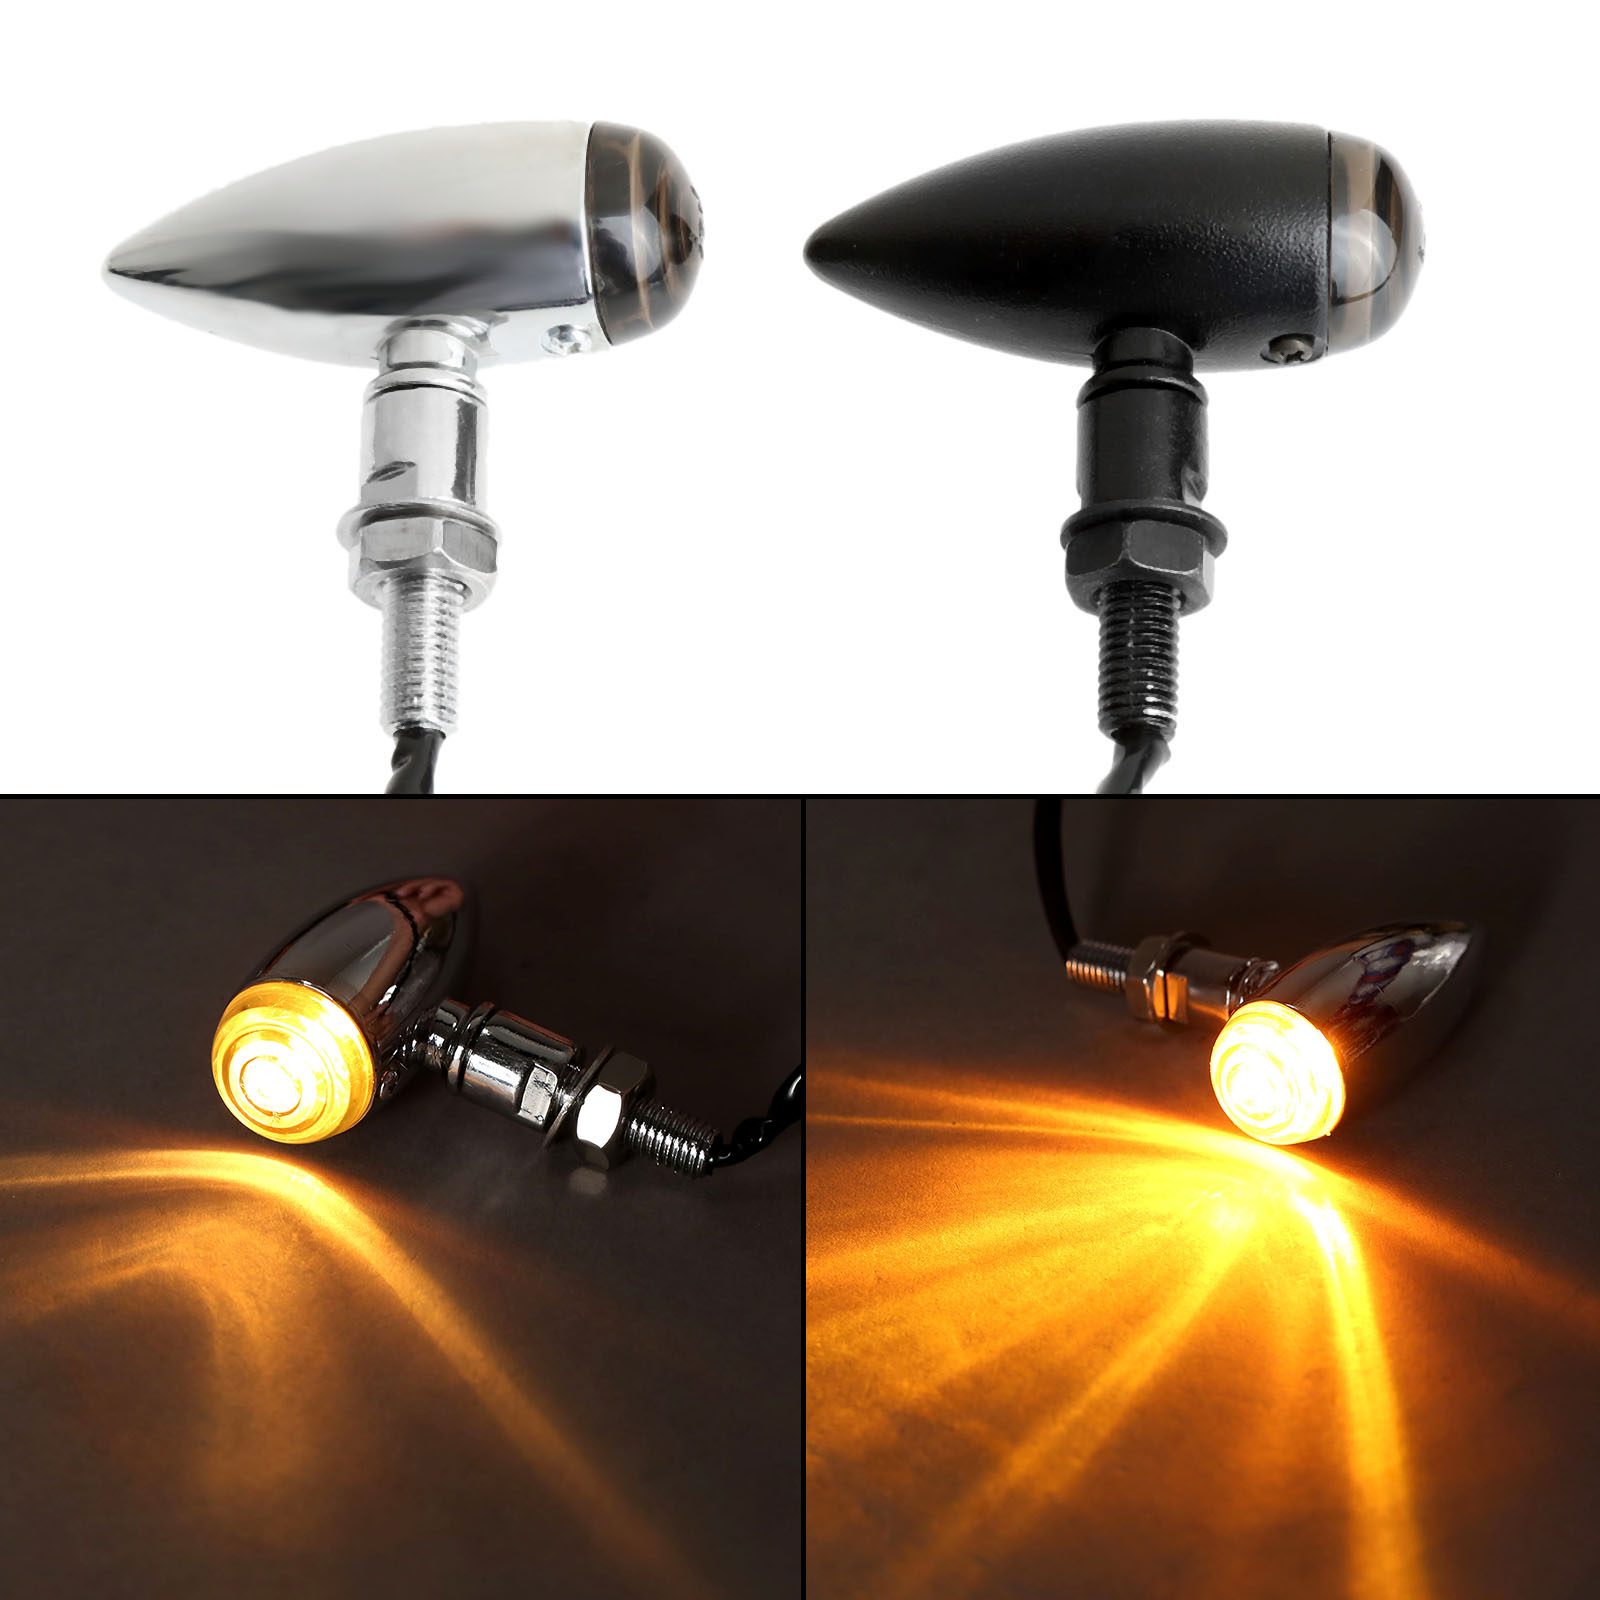 2Pcs Motorcycle Bullet Turn Signals Indicators Blinker Lights Lamp Flashing For Choppers Cruisers Honda Suzuki Kawasaki Yamaha